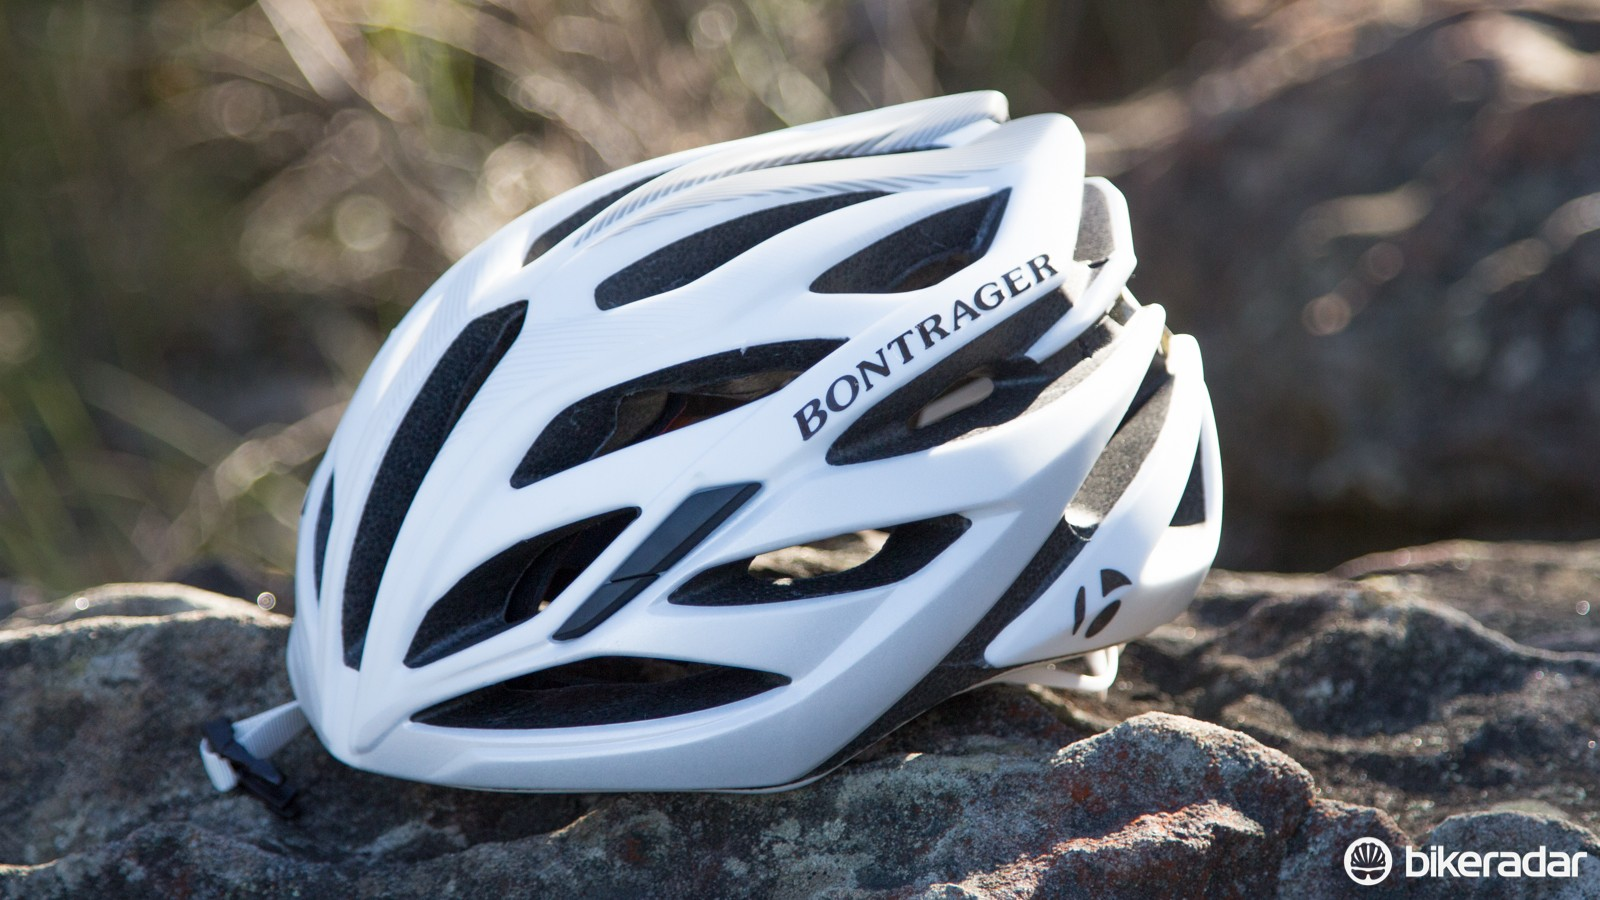 The Bontrager Circuit is a mid-range helmet with high-end features